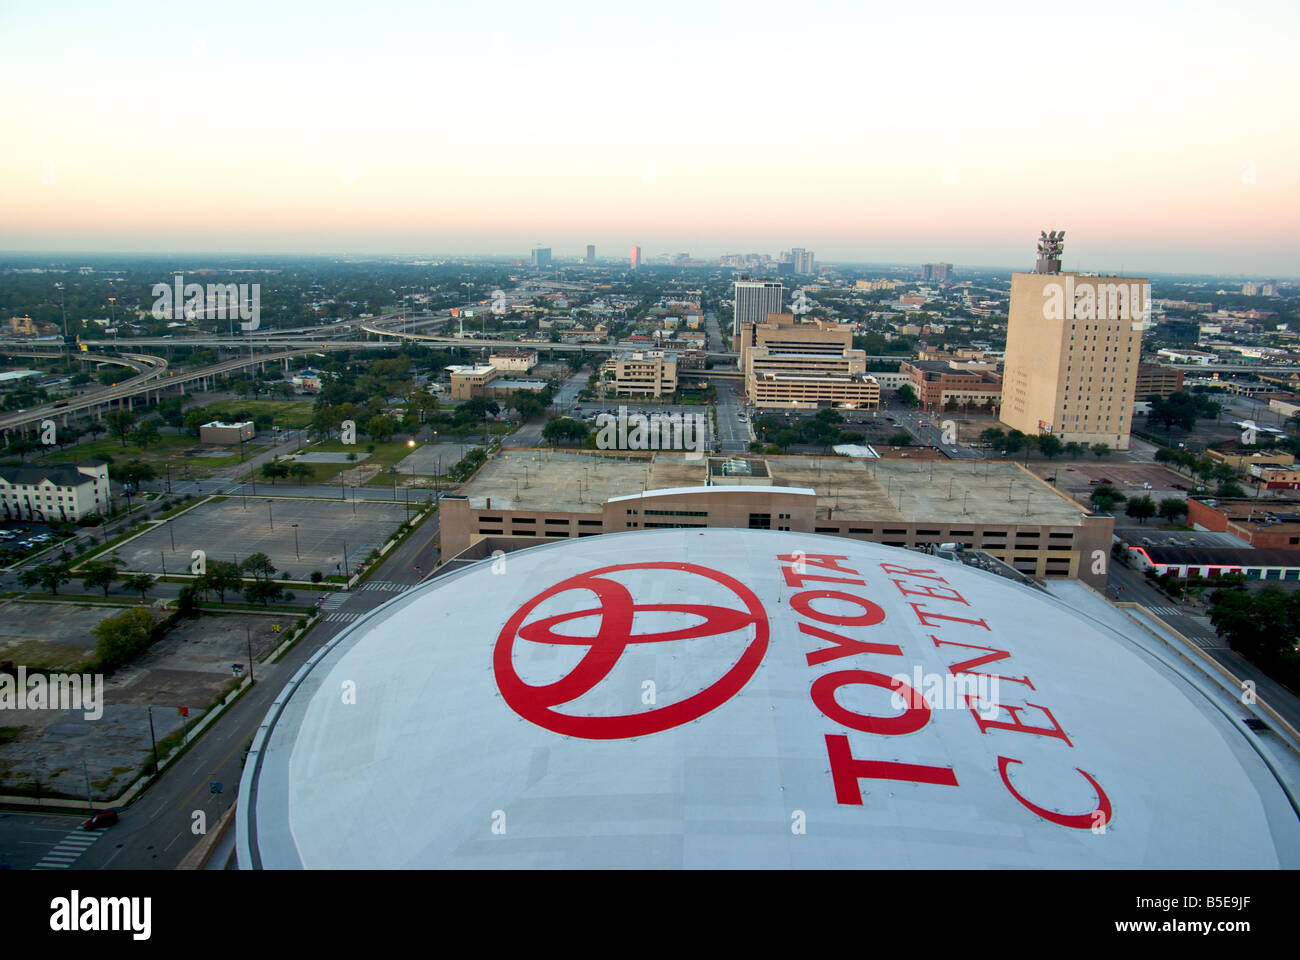 The Roof Of The Toyota Center Basketball And Ice Arena At Dawn Looking West  Over Downtown